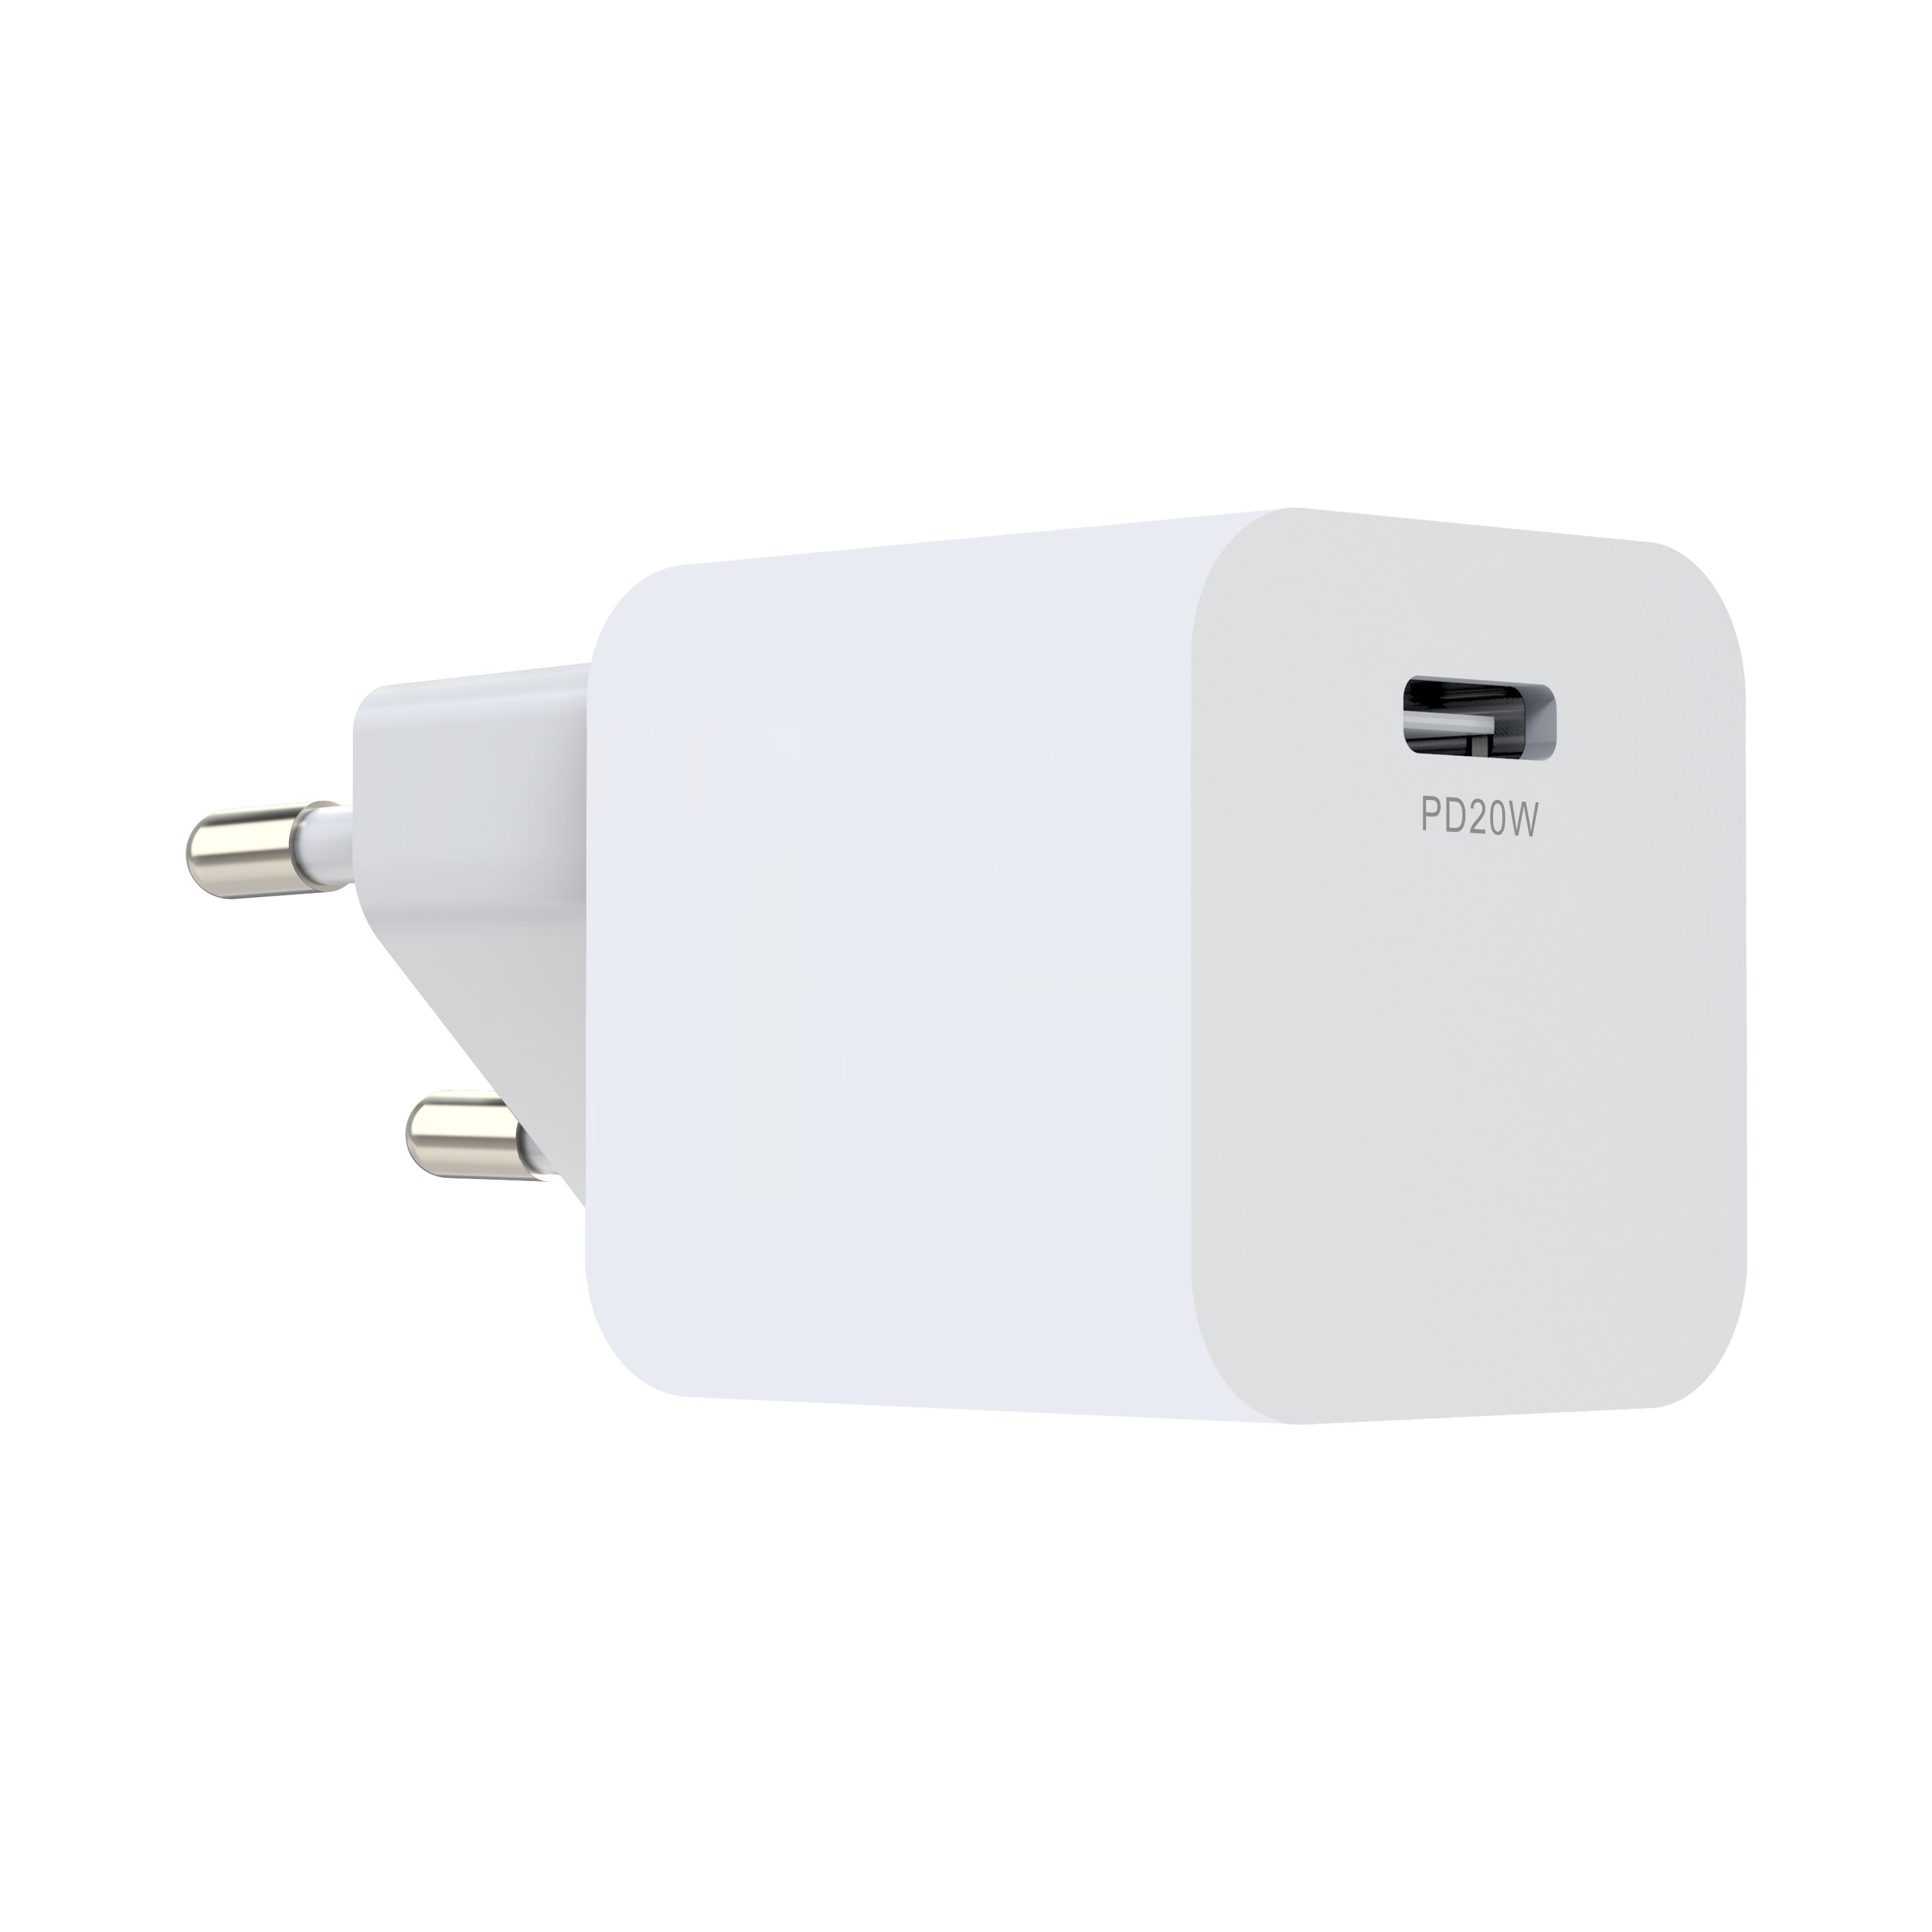 PD 20W USB C Wall Charger